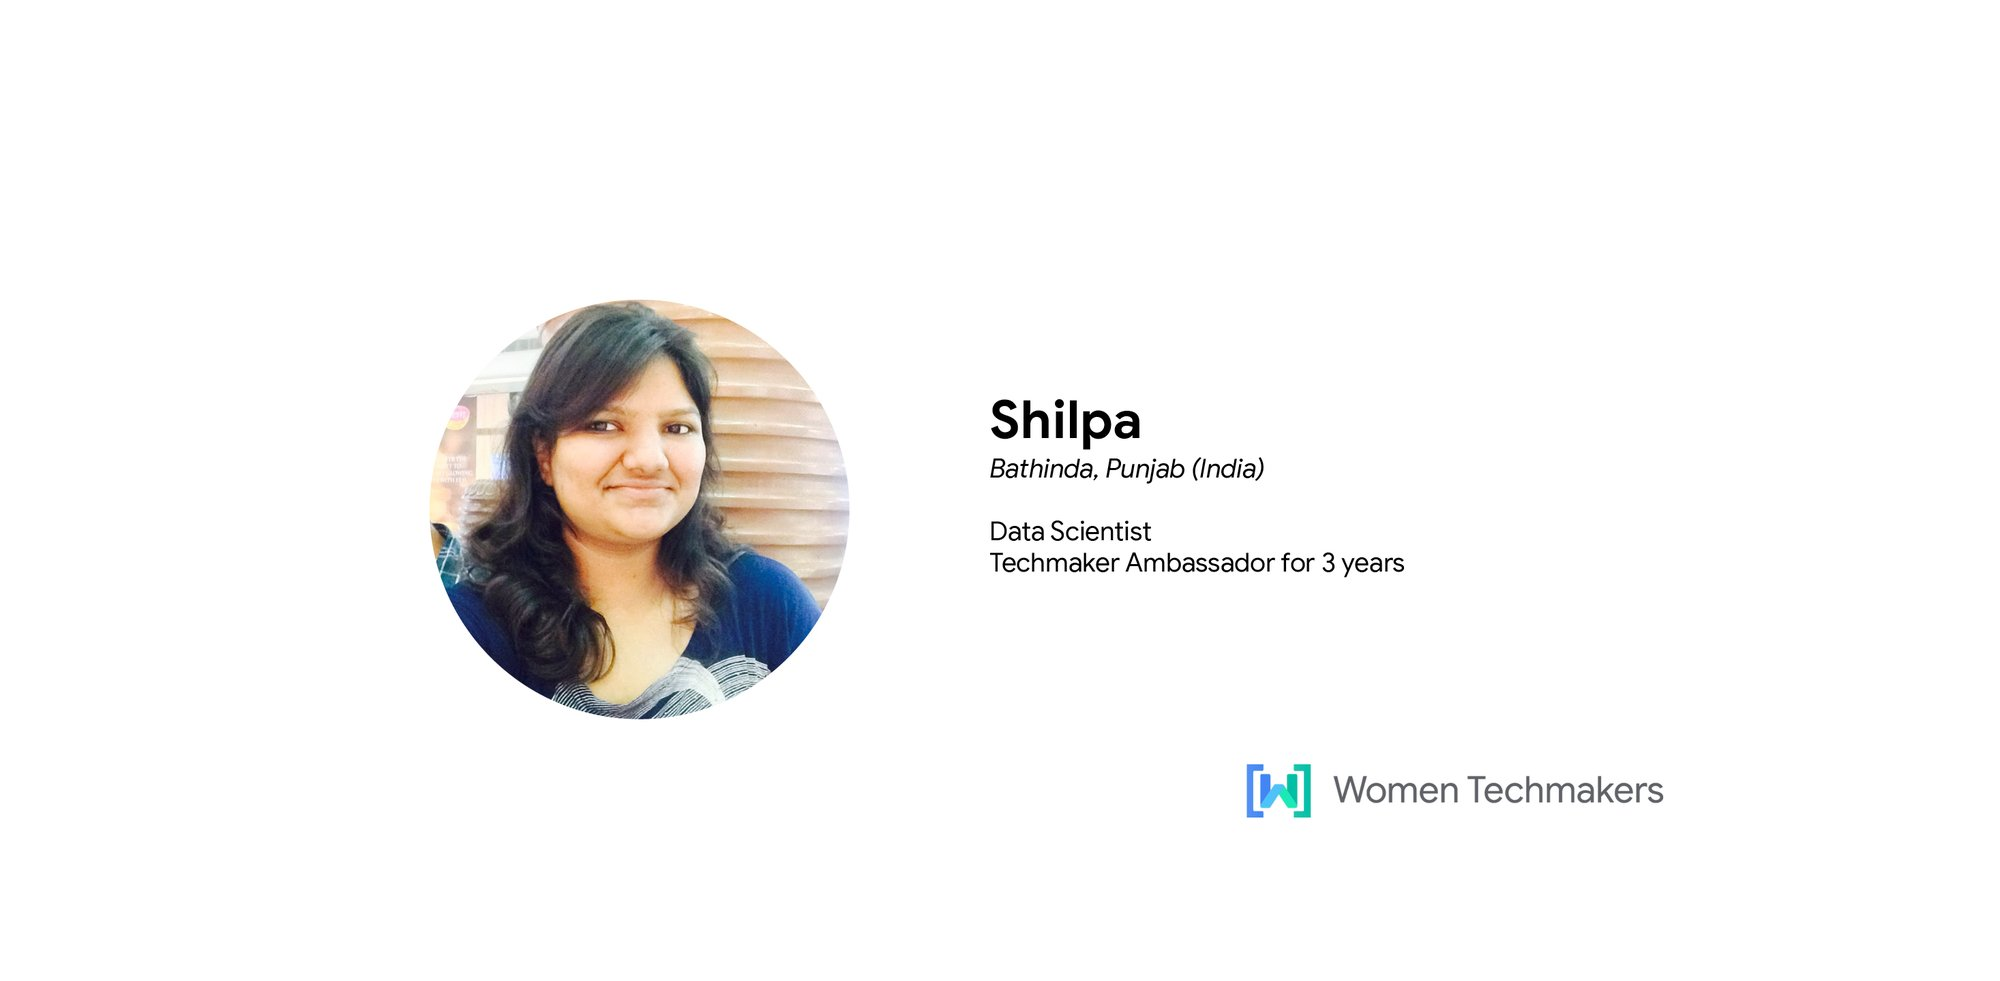 Get to know our Women Techmakers Ambassadors